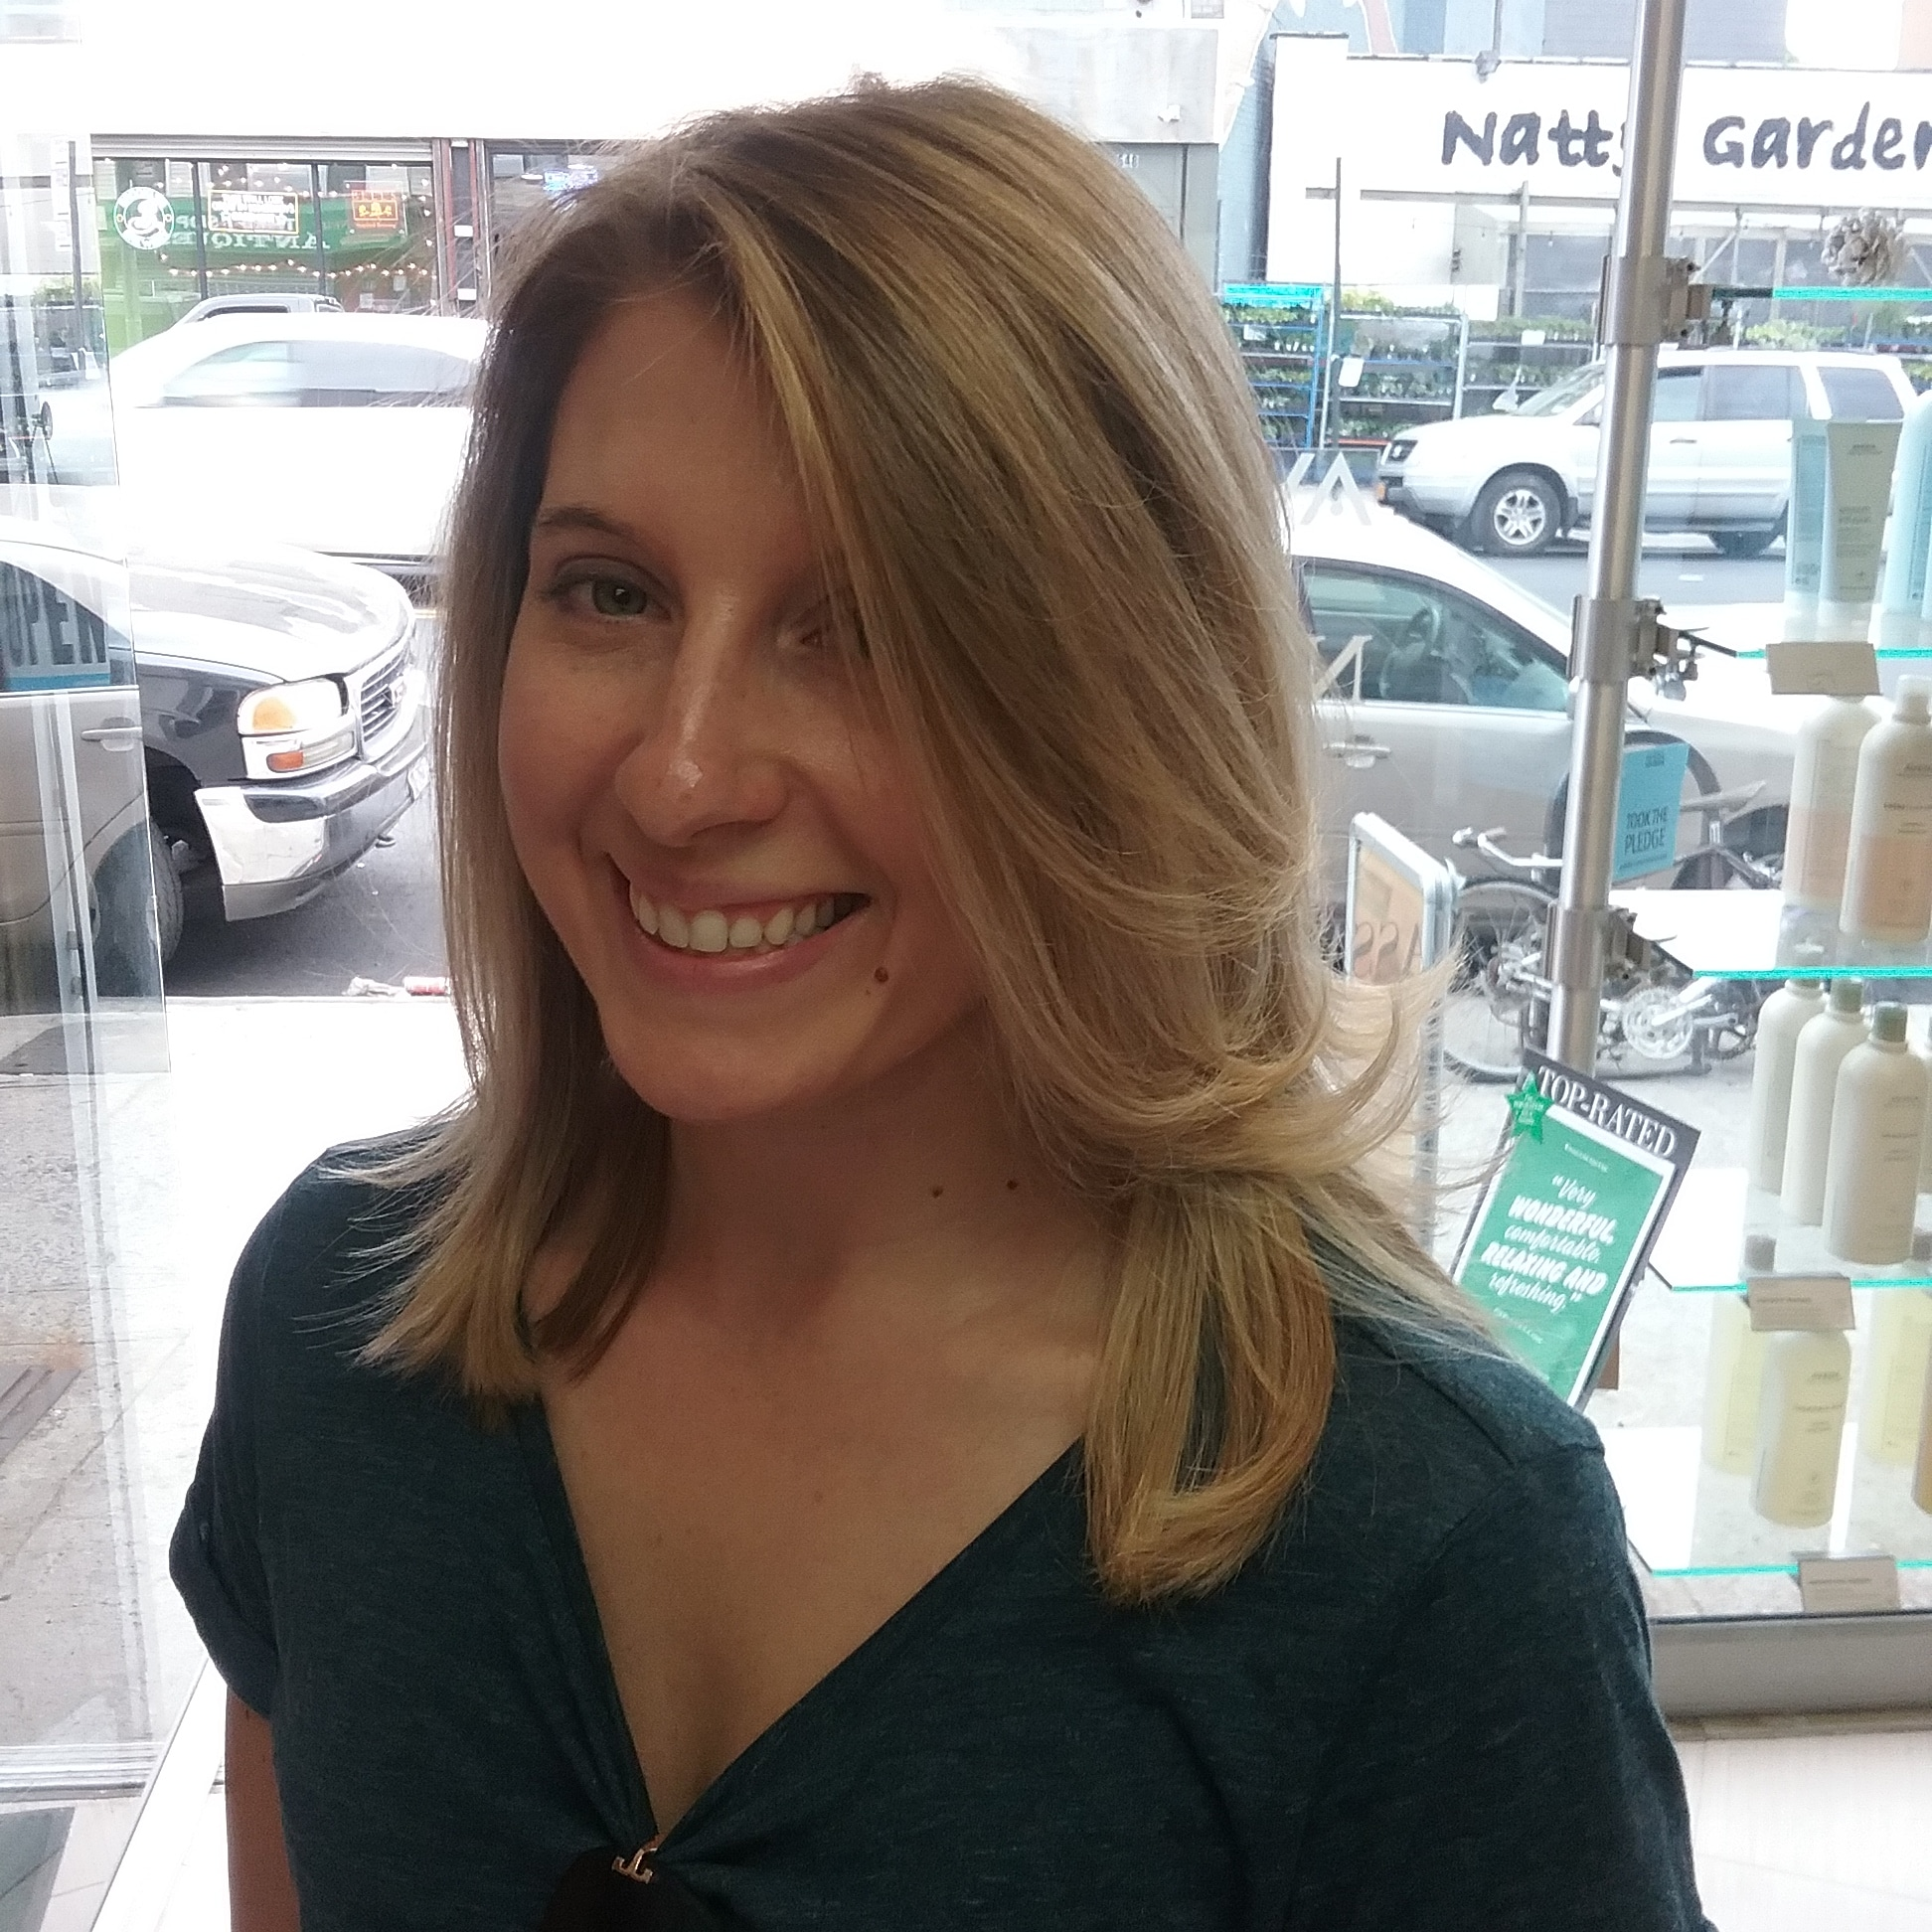 Haircut, blowdry style, hair color